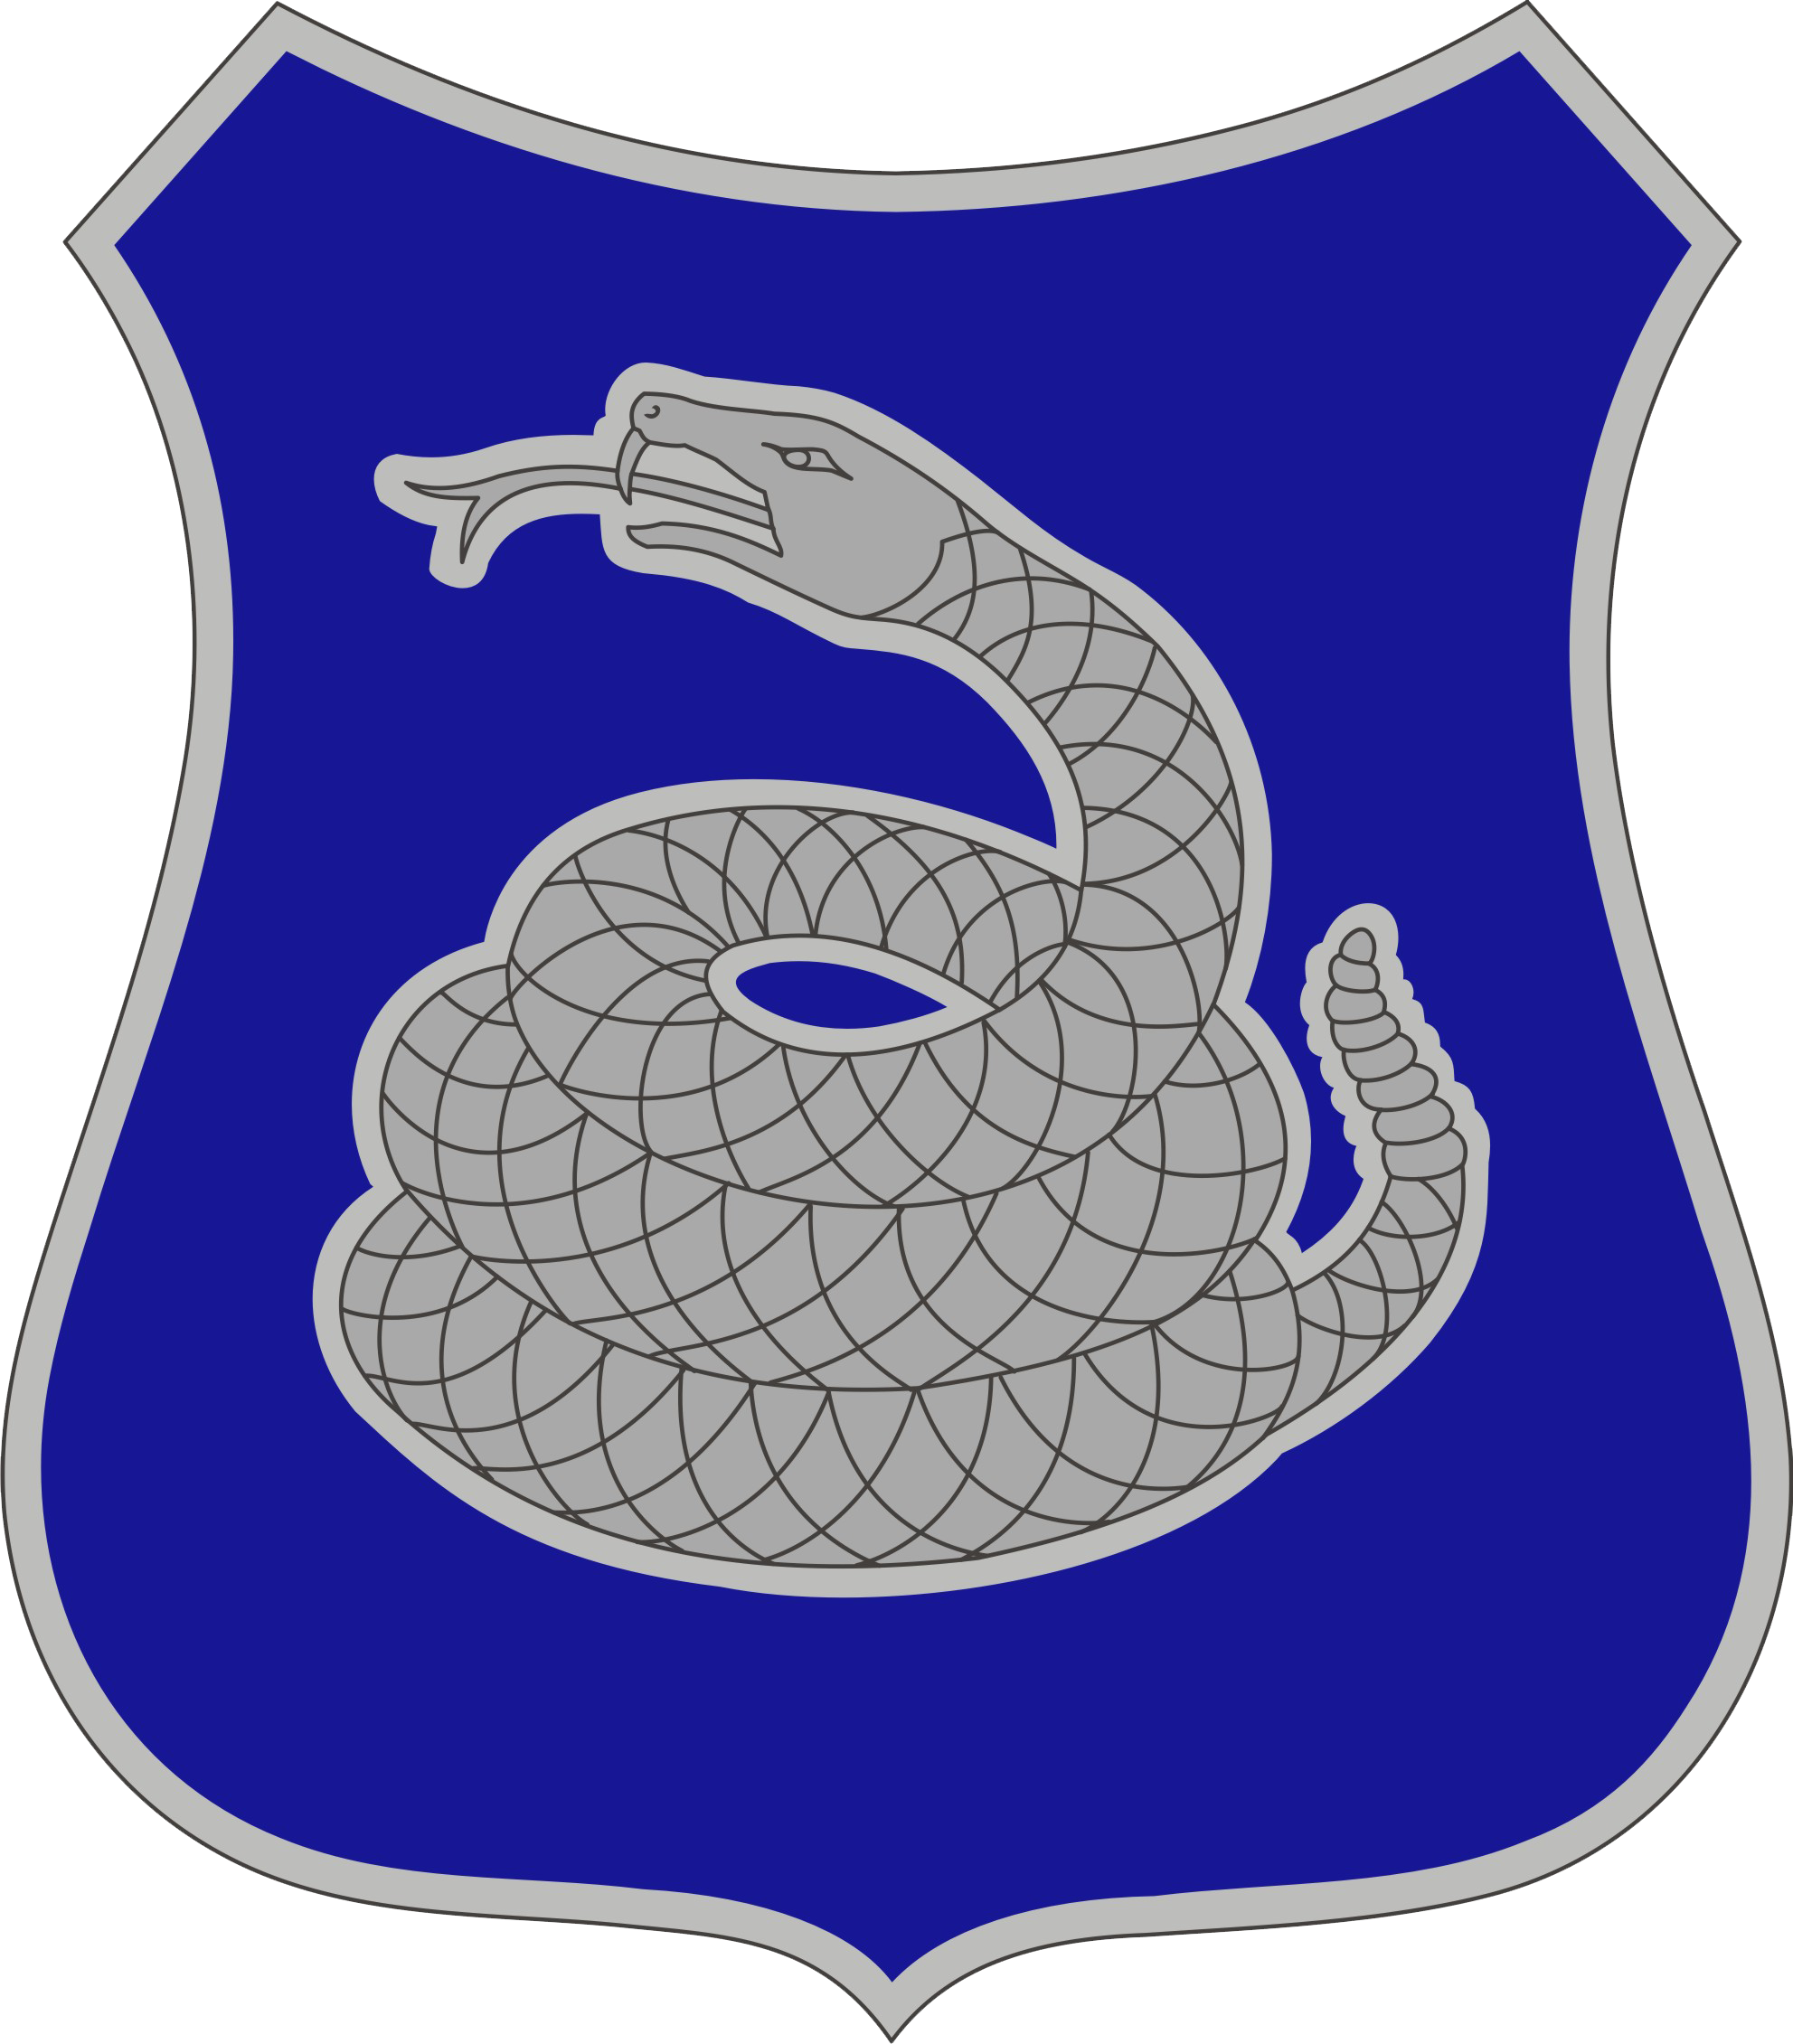 th infantry regiment. Youtube clipart battlefield